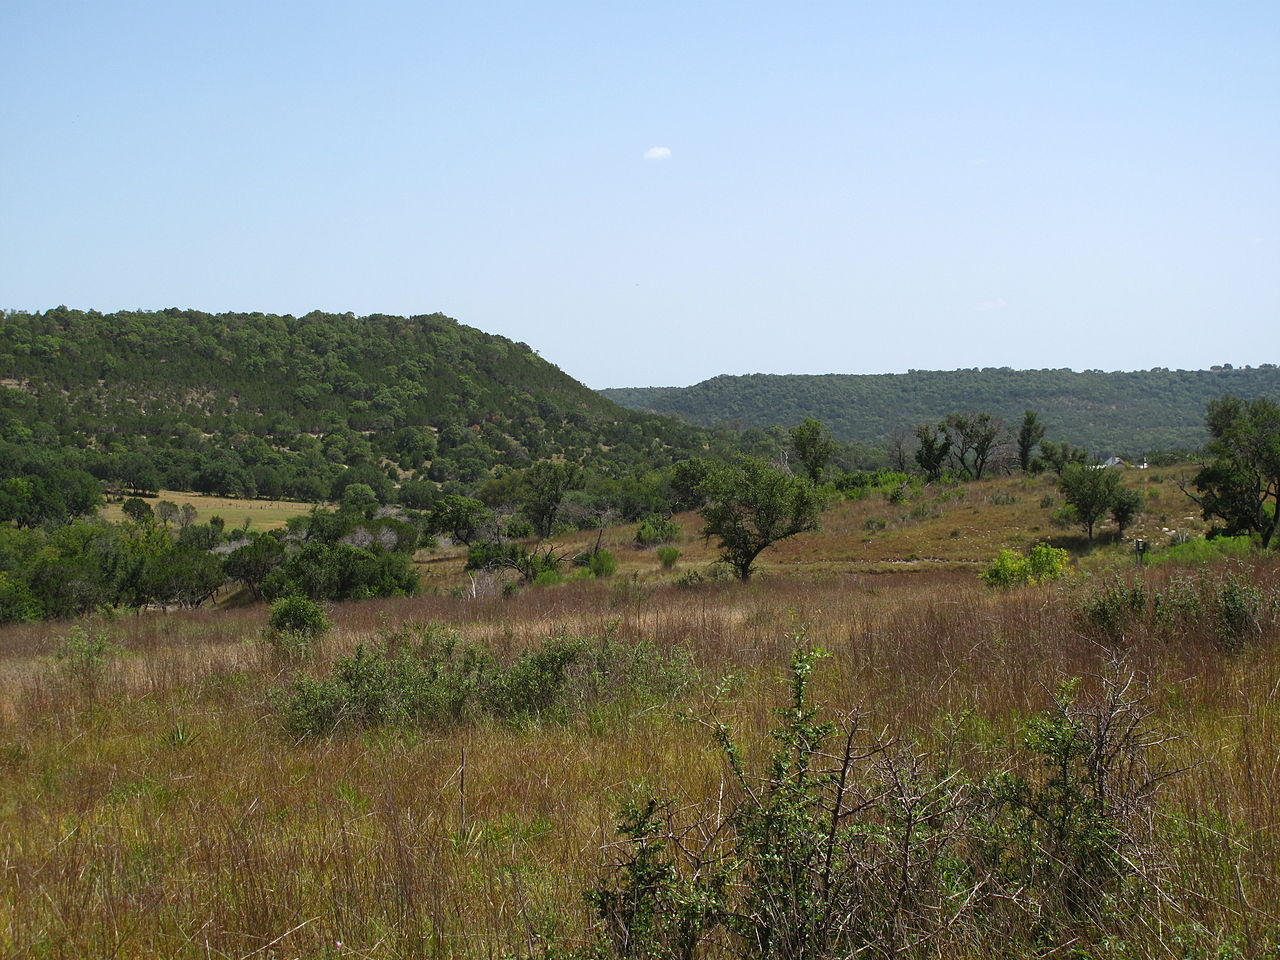 photo: A view of the Balcones Canyonlands National Wildlife Refuge. Photo by Matthewrutledge.